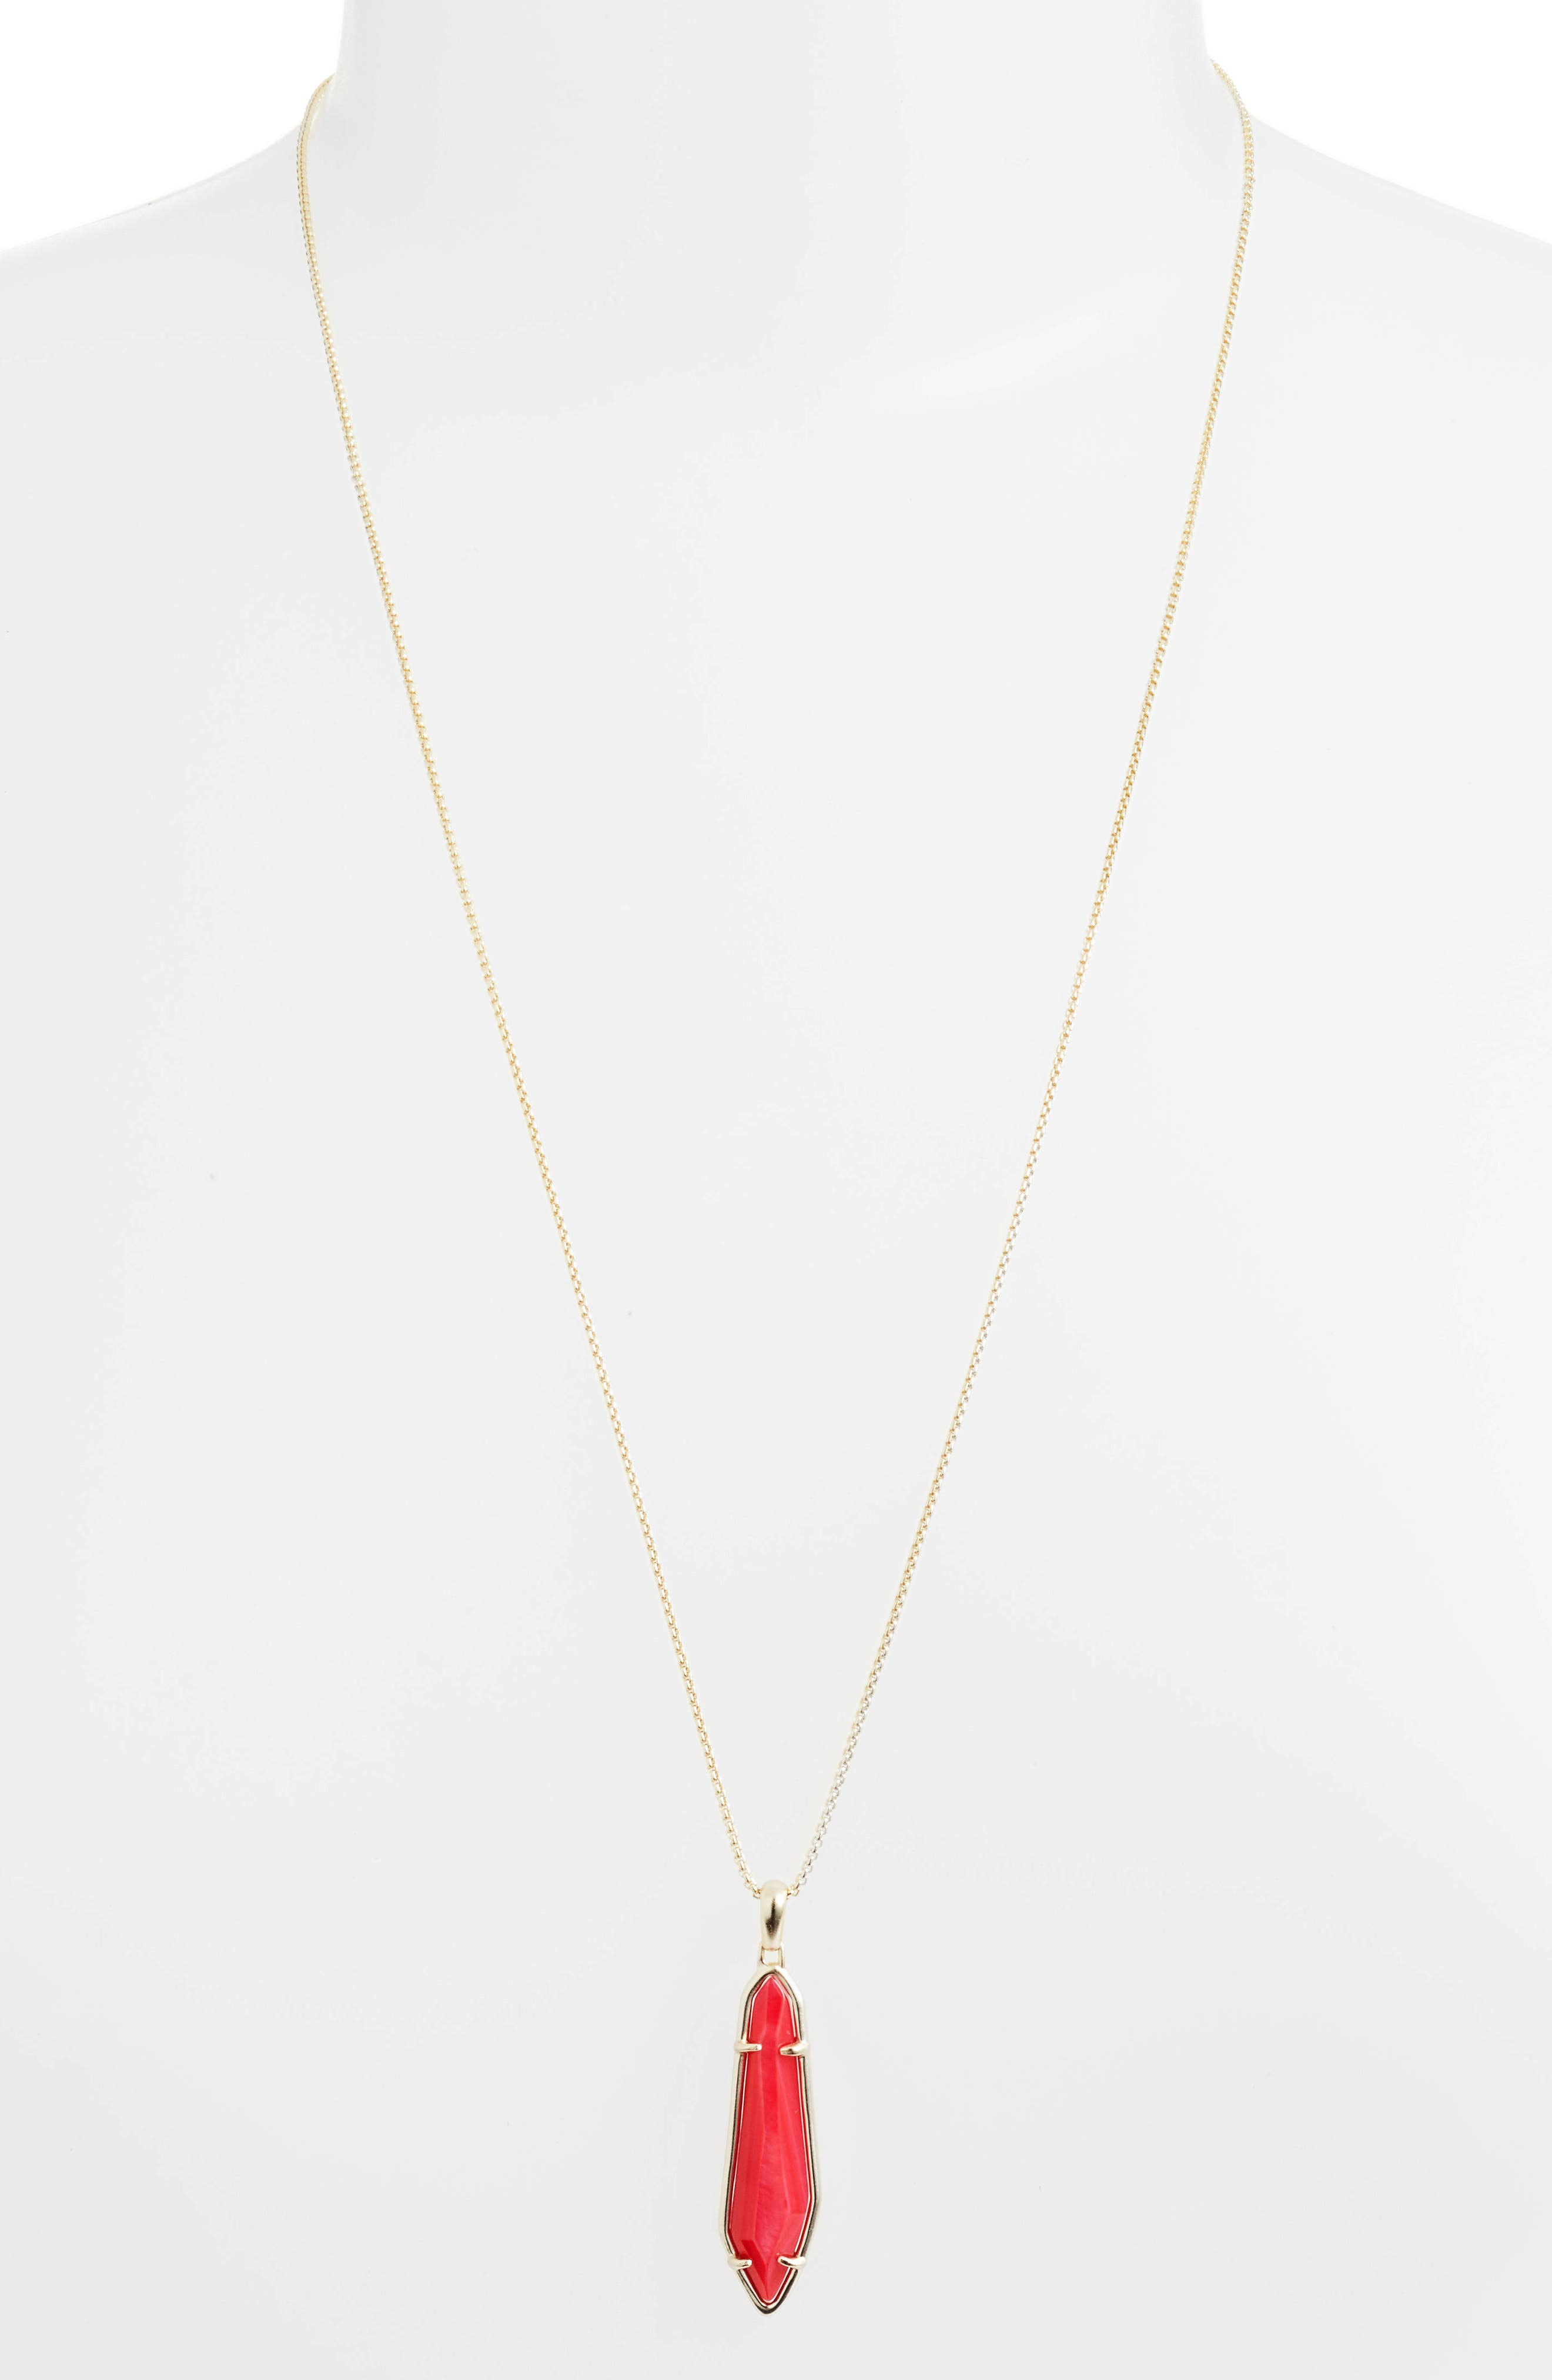 Cassidy Stone Necklace,                         Main,                         color, Red Mop/ Gold